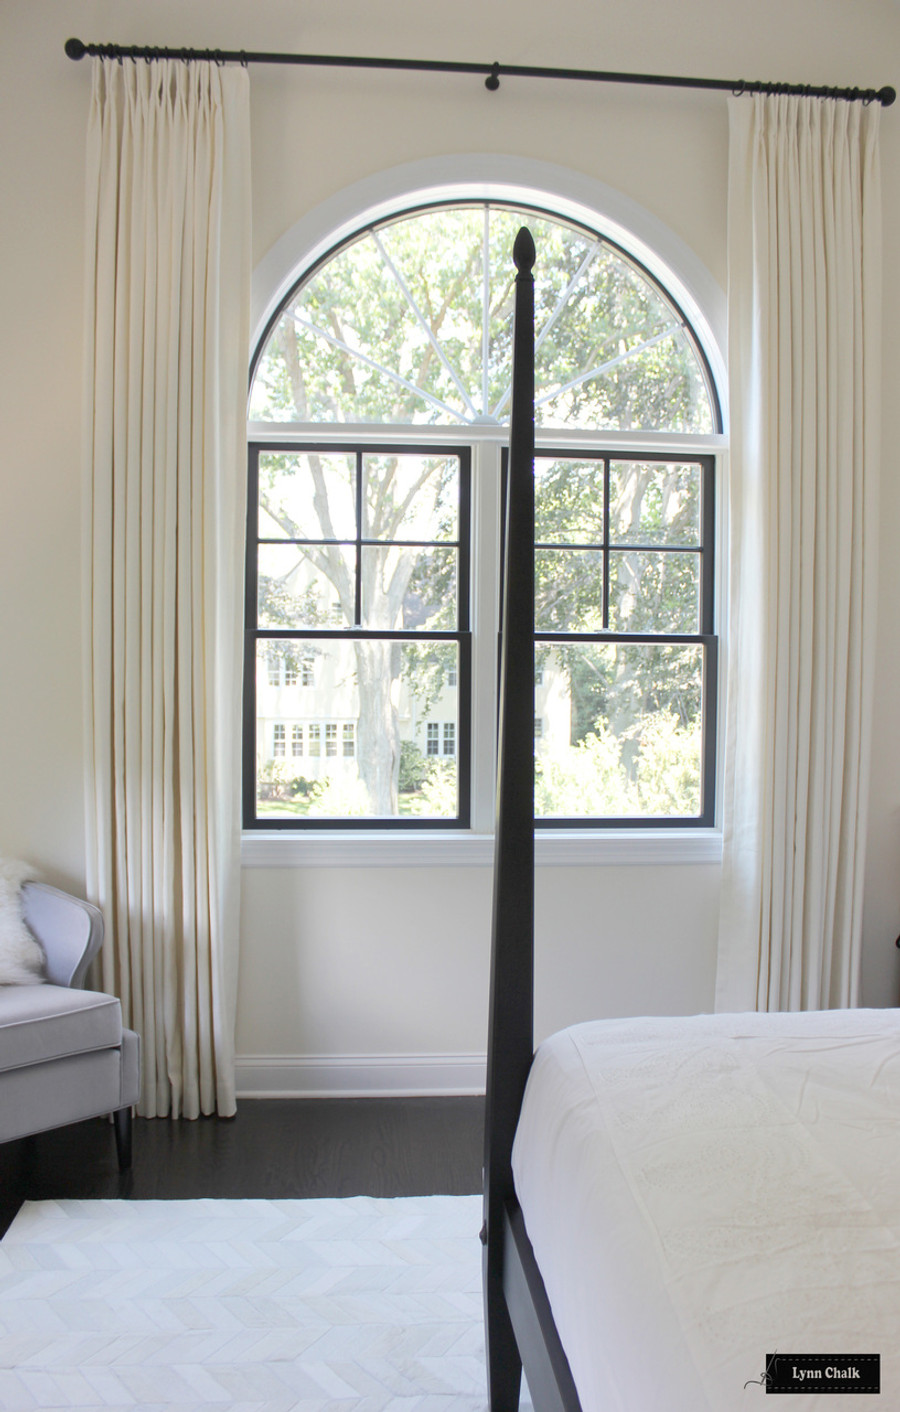 Trend Linen/Cotton 01838T Drapes with Samuel & Sons Ogee Embroidered Border 977 56199 Trim